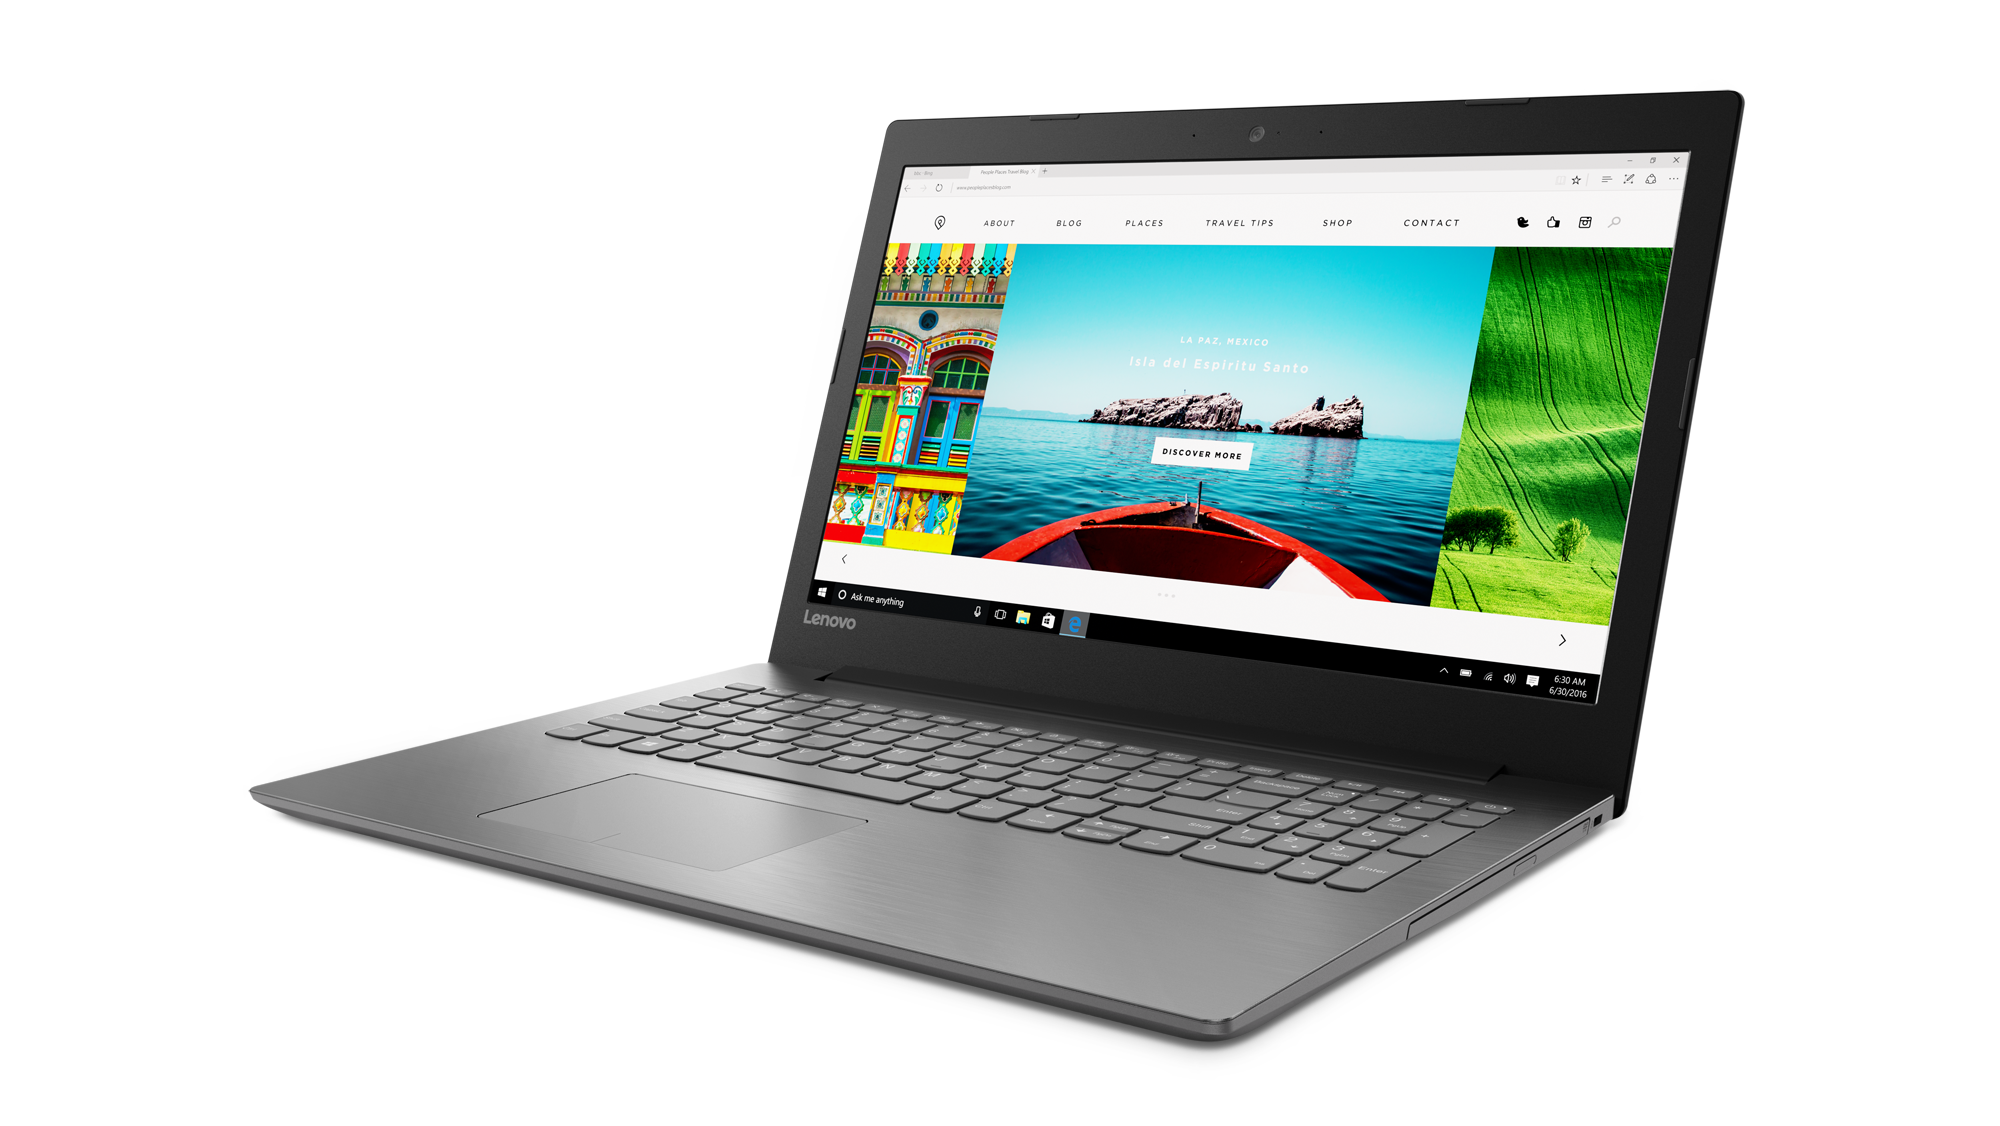 "Lenovo IdeaPad 320-15IKBRN i5-8250U 3,40GHz/8GB/HDD 2TB/15,6"" FHD/AG/GeForce 2GB/DVD-RW/WIN10 černá 81BG000HCK"